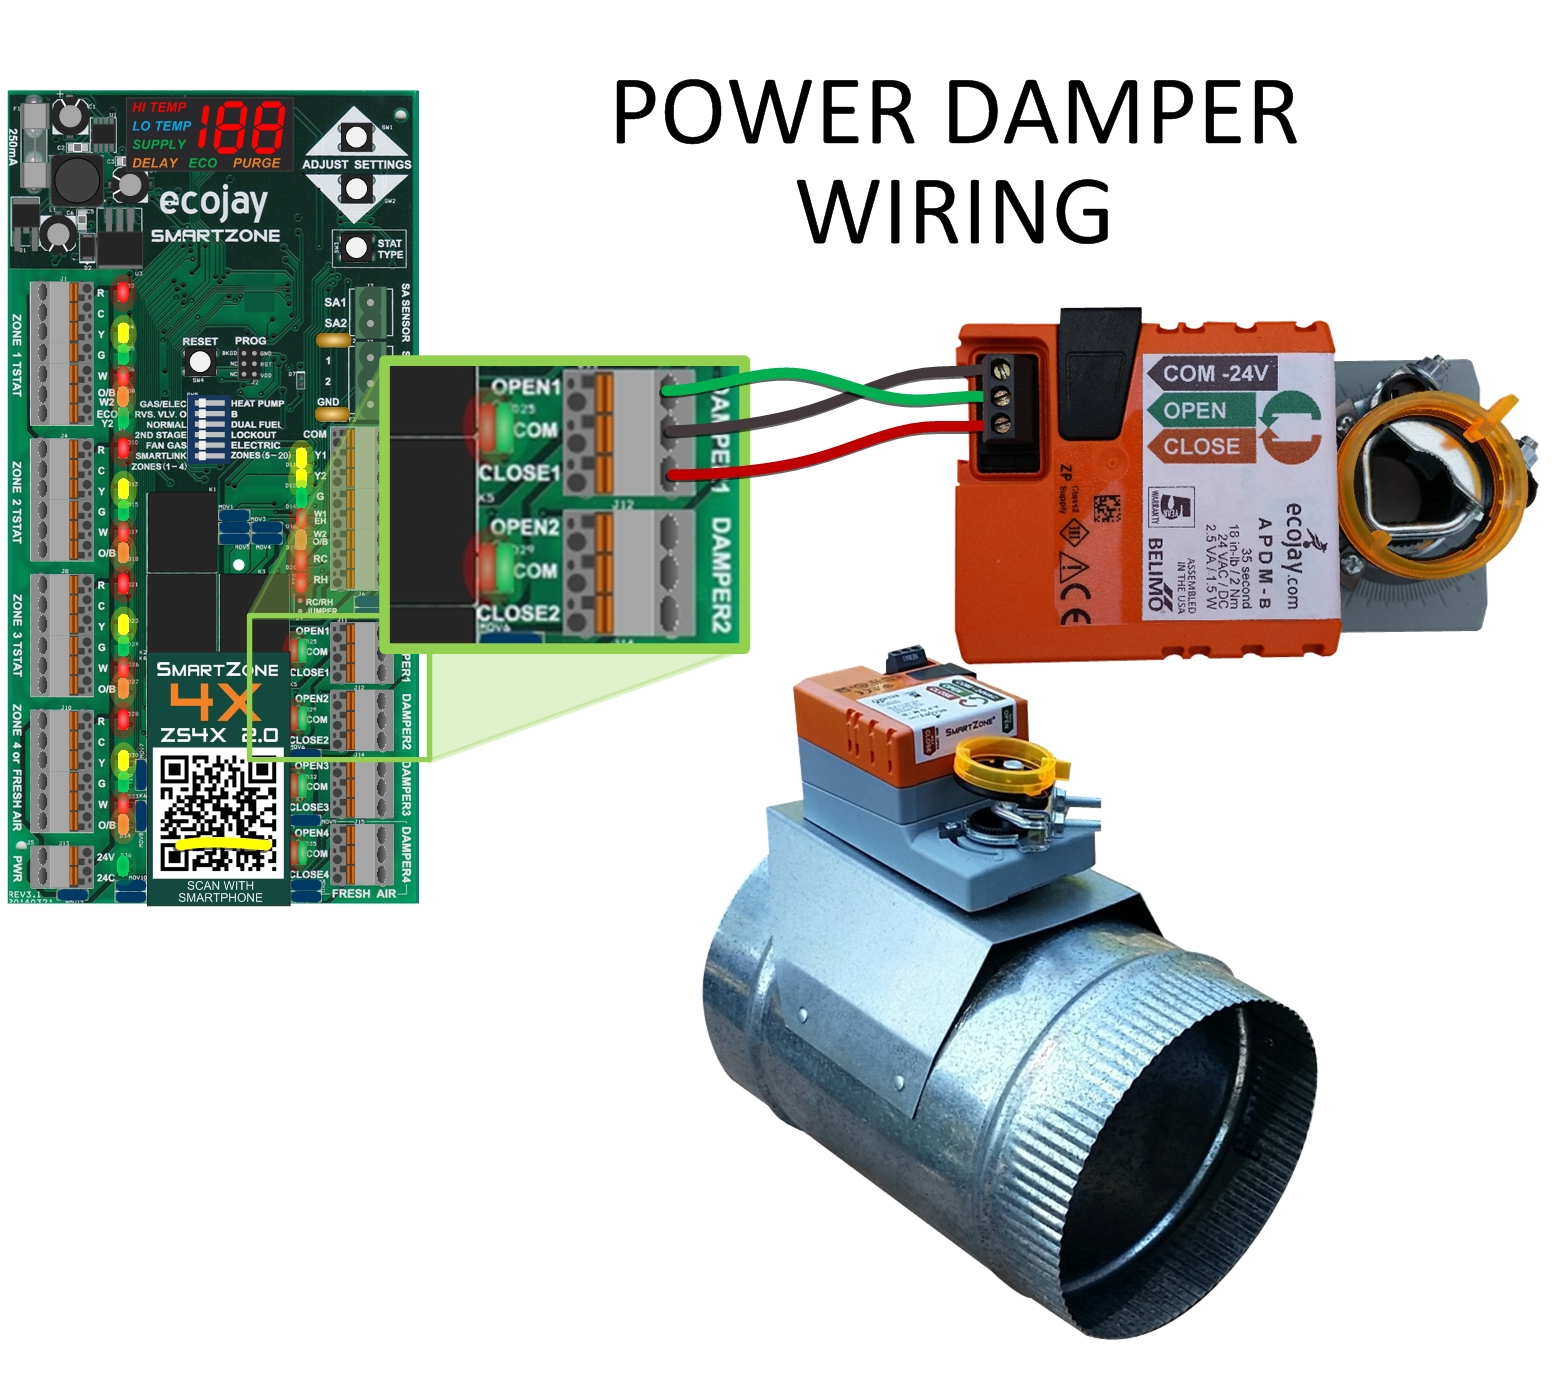 small resolution of smartzone power open dampers wiring jpg